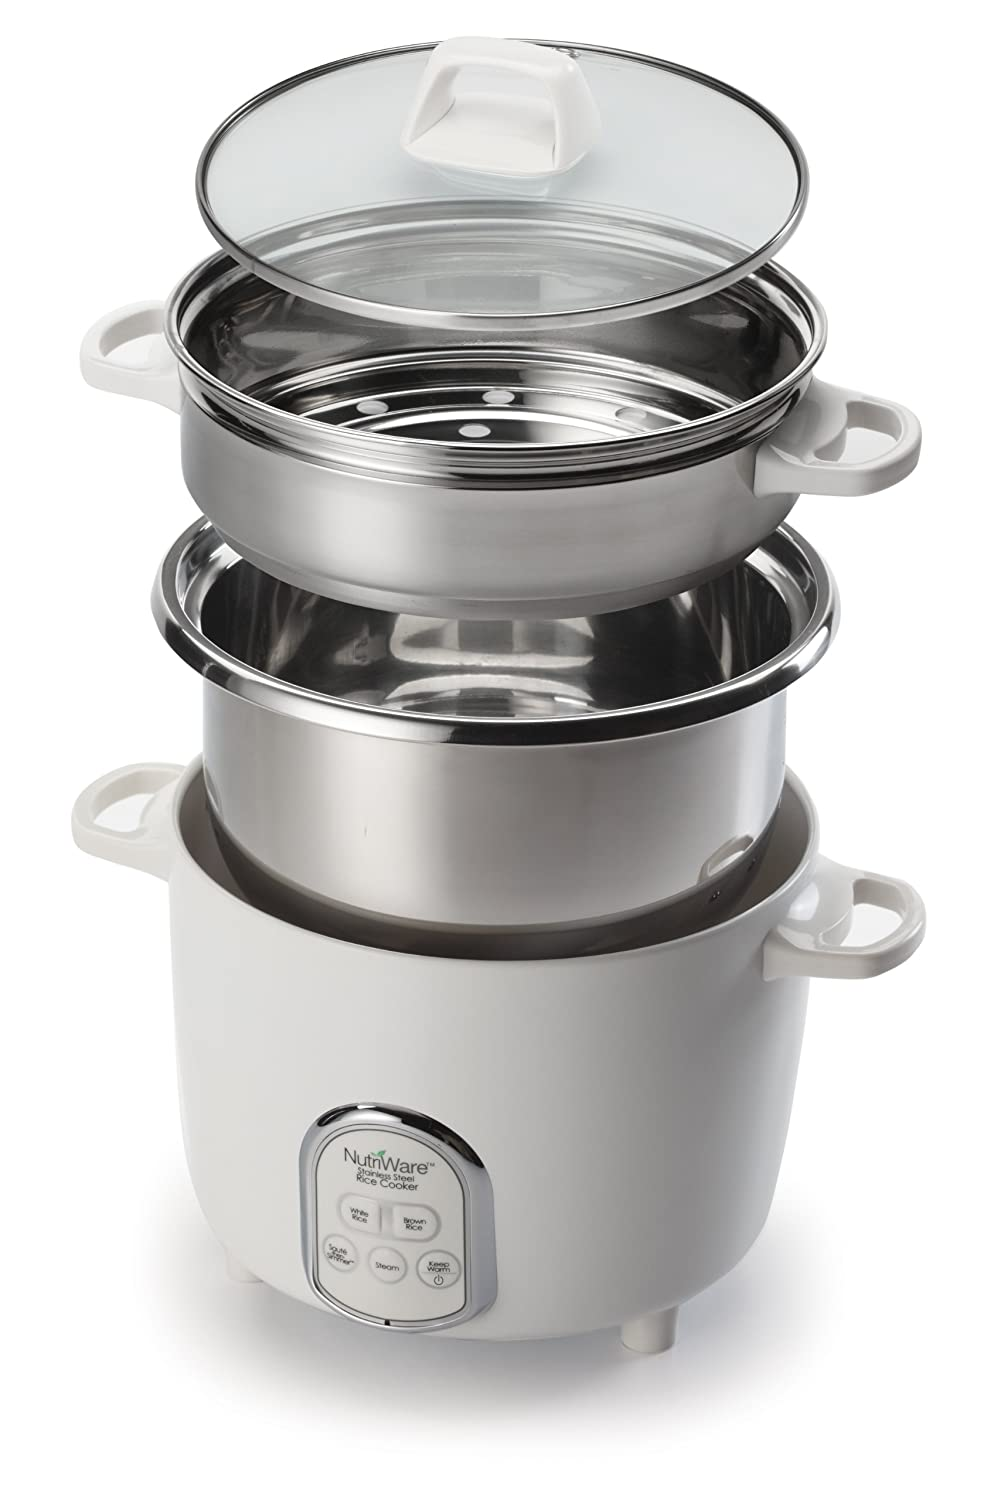 Aroma NutriWare 20-Cup (Cooked) Digital Rice Cooker and